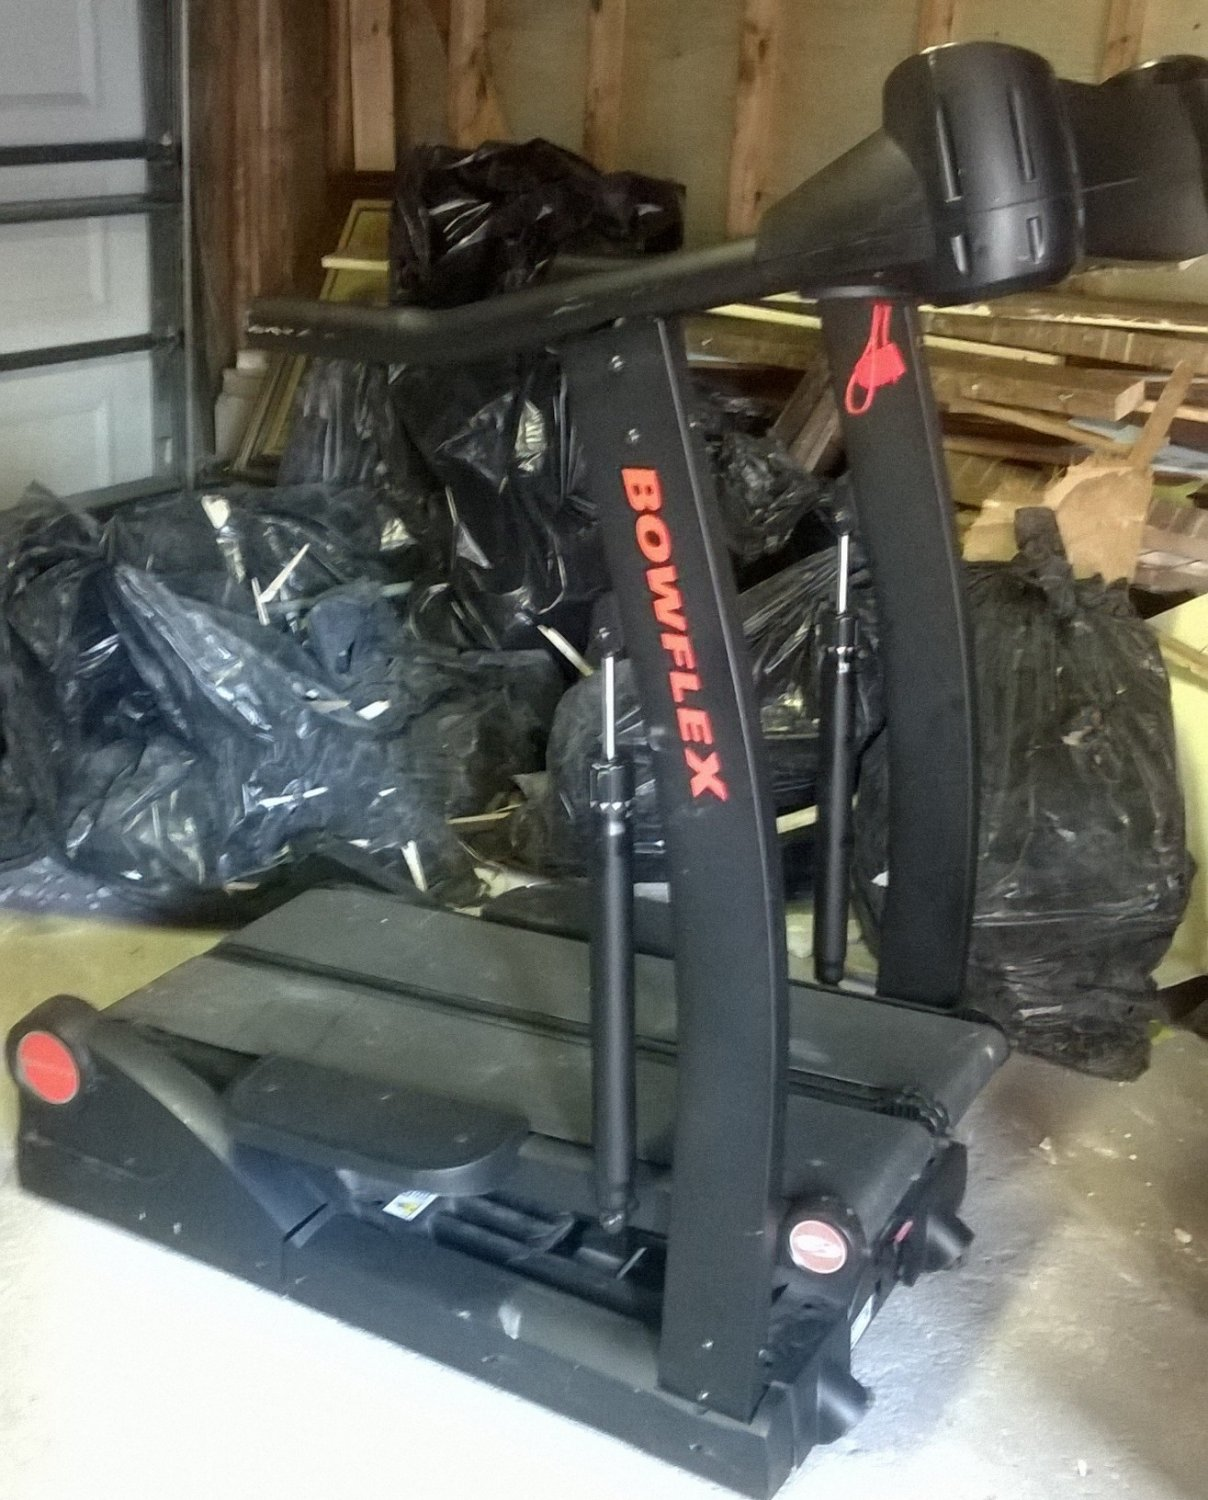 Bowflex Treadclimber Weight Loss: Used Bowflex Treadclimber TC5000 4 Exercise In One